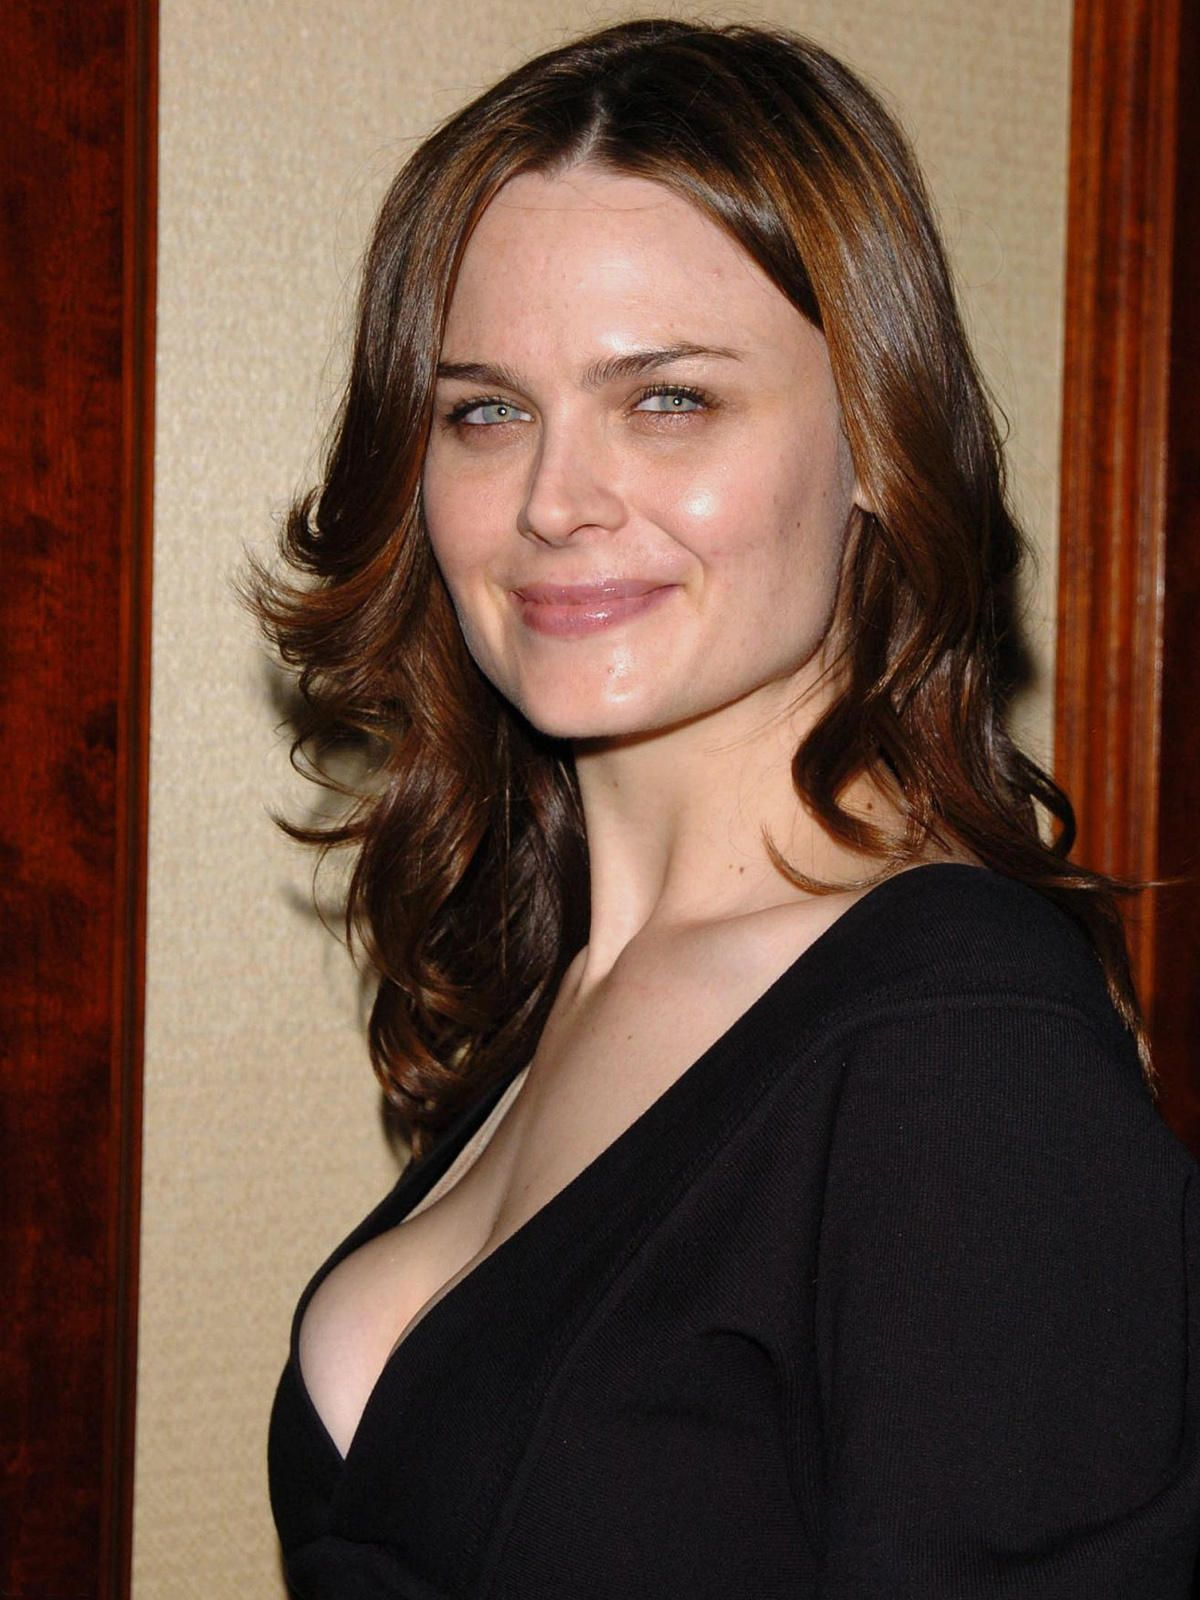 Pin by Arales Bloodmoon on YOU'RE WELCOME! | Emily deschanel, Celebrities, Emily